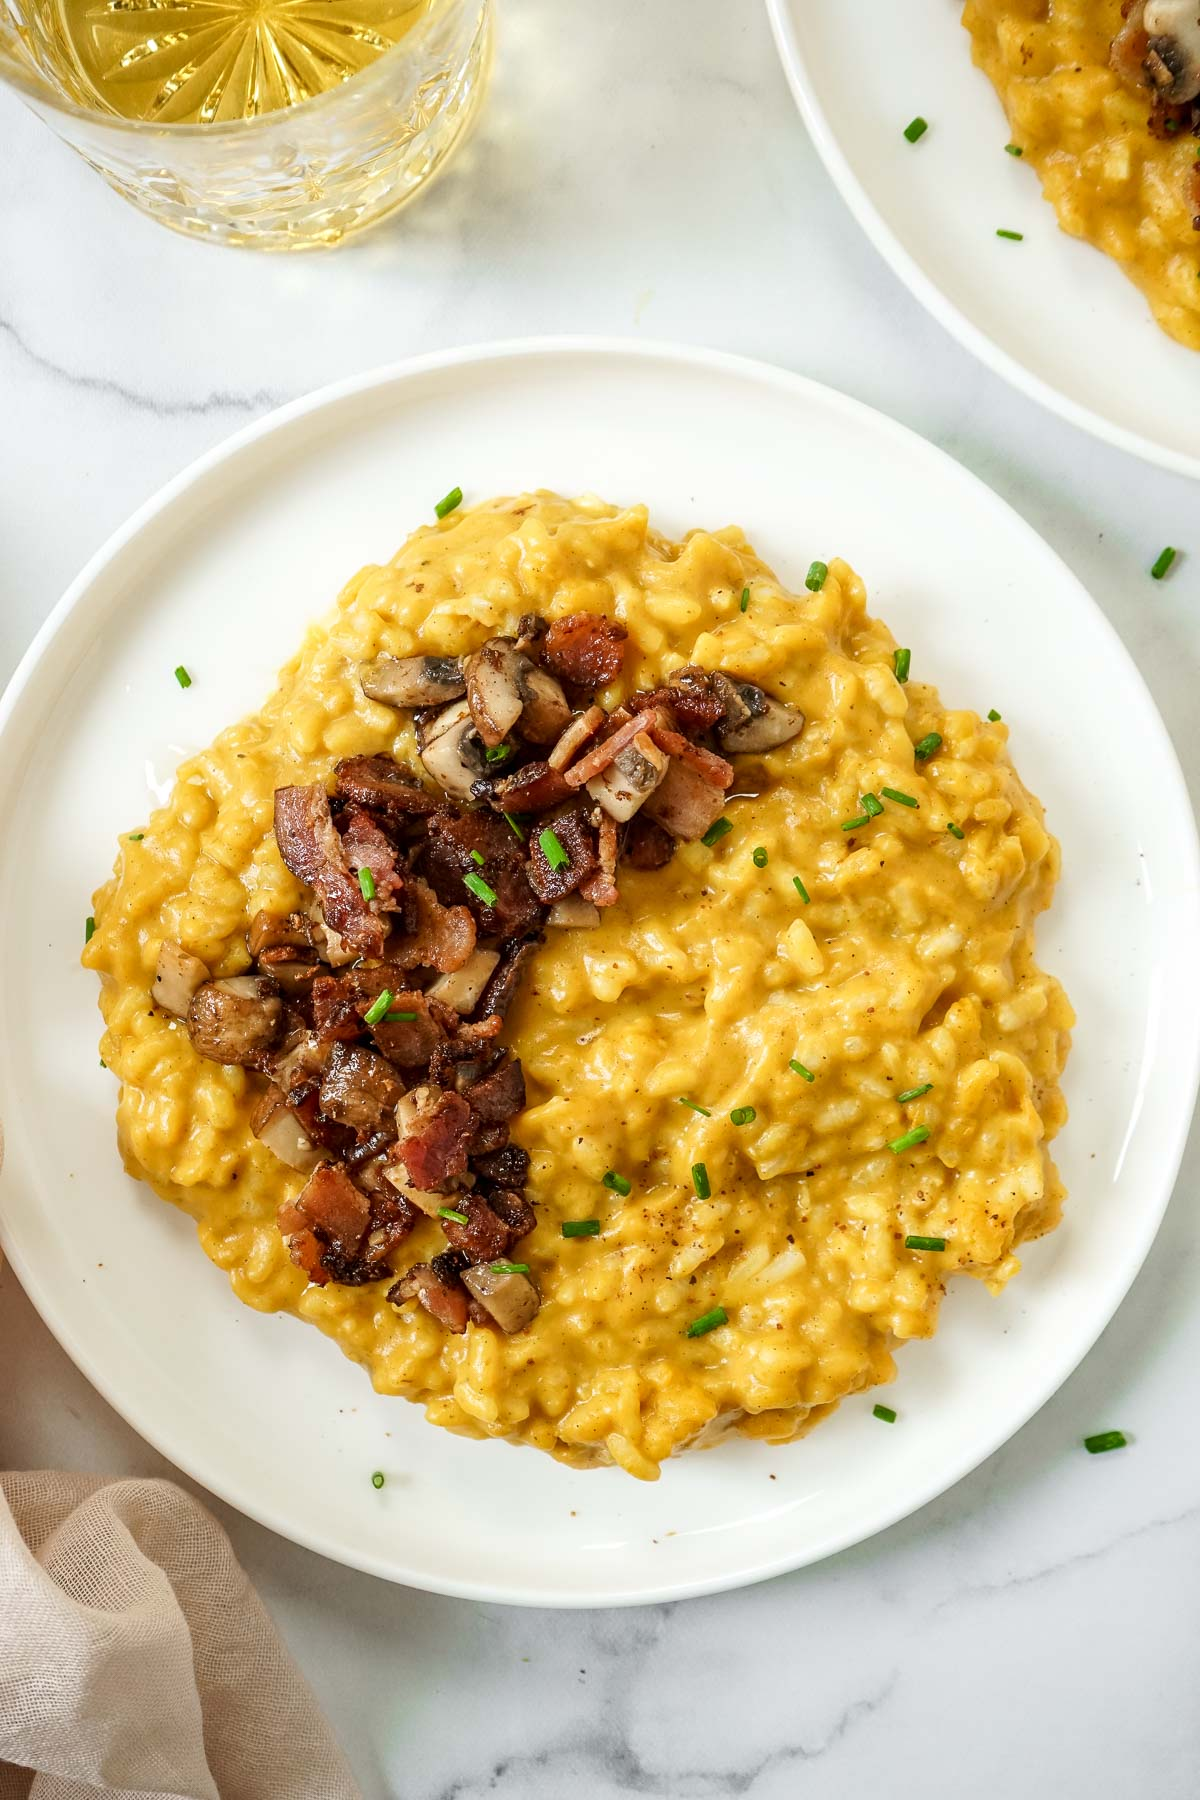 Pumpkin risotto with mushrooms and bacon on a white plate.